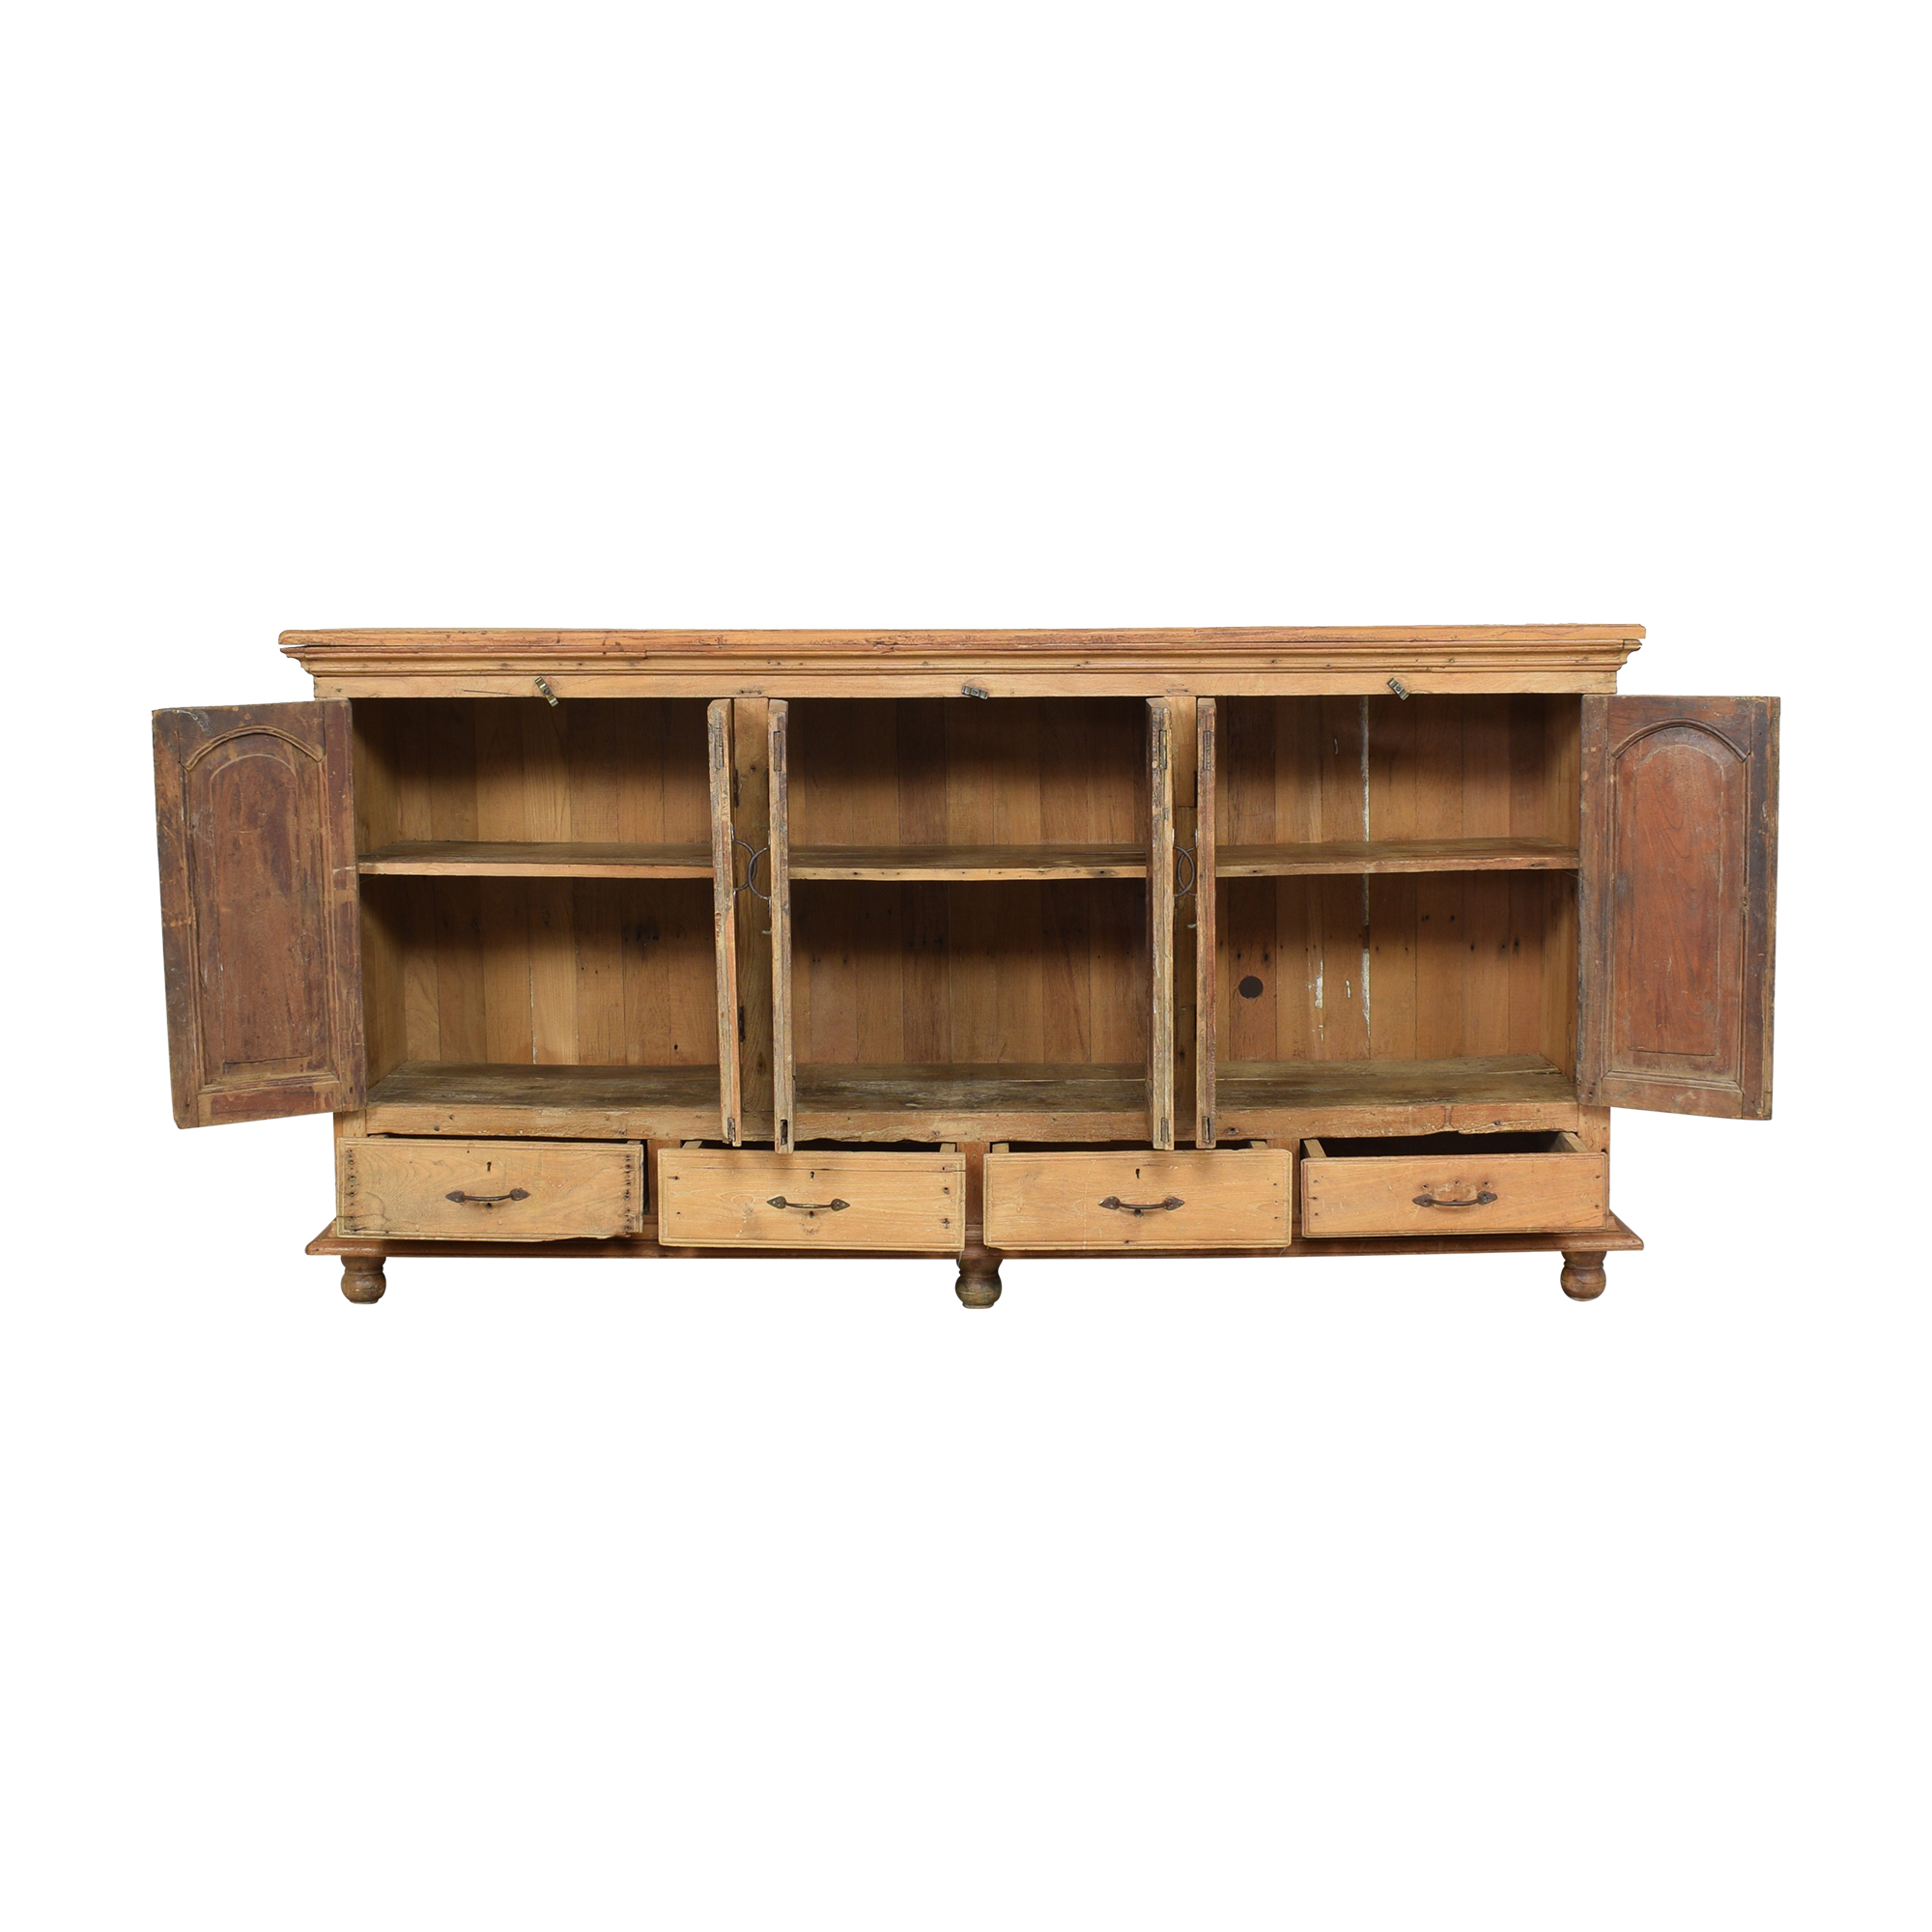 ABC Carpet & Home ABC Carpet & Home Rustic Sideboard light brown